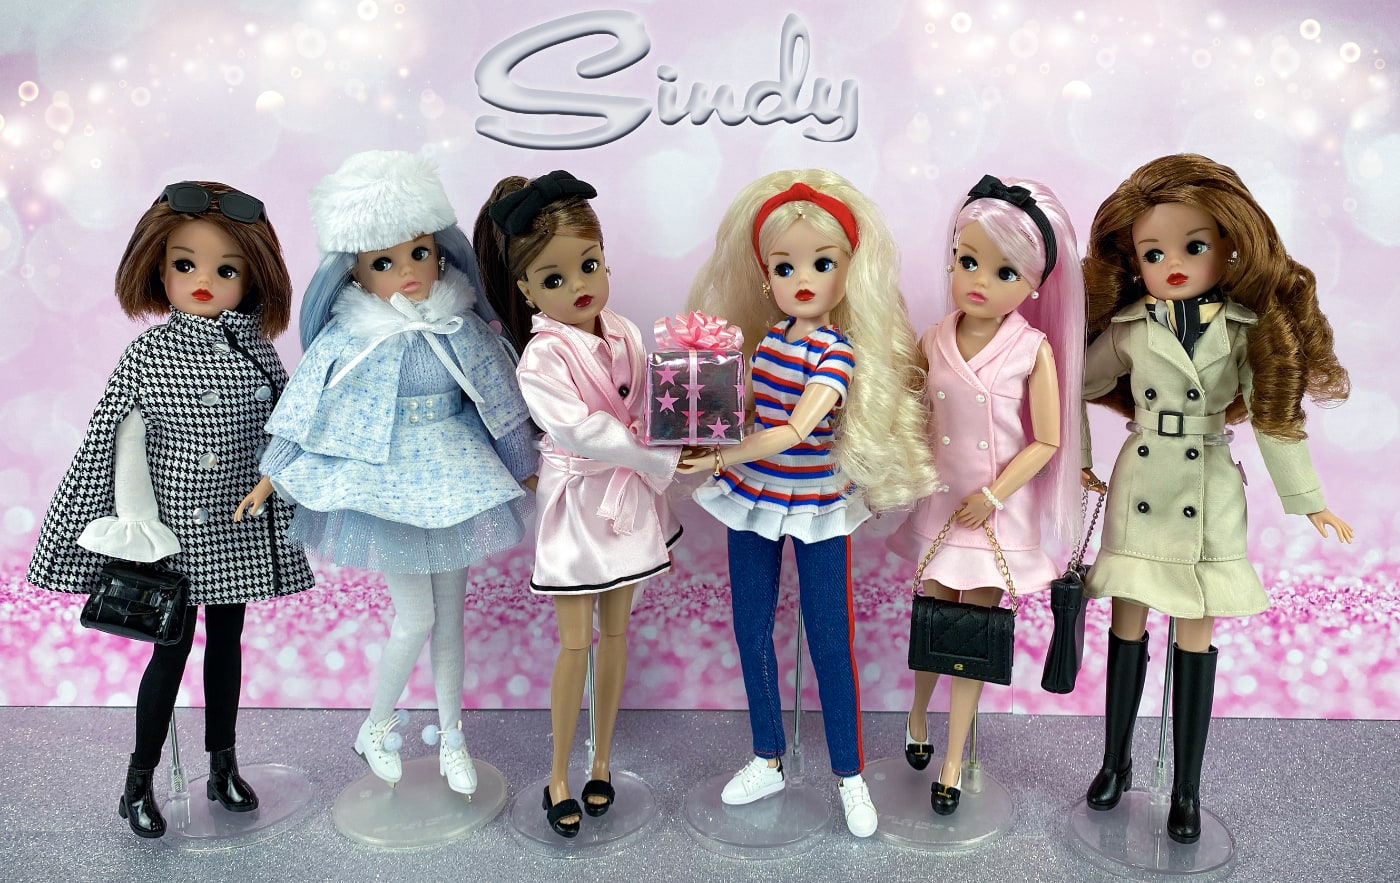 6 September - latest photo of new Sindy dolls